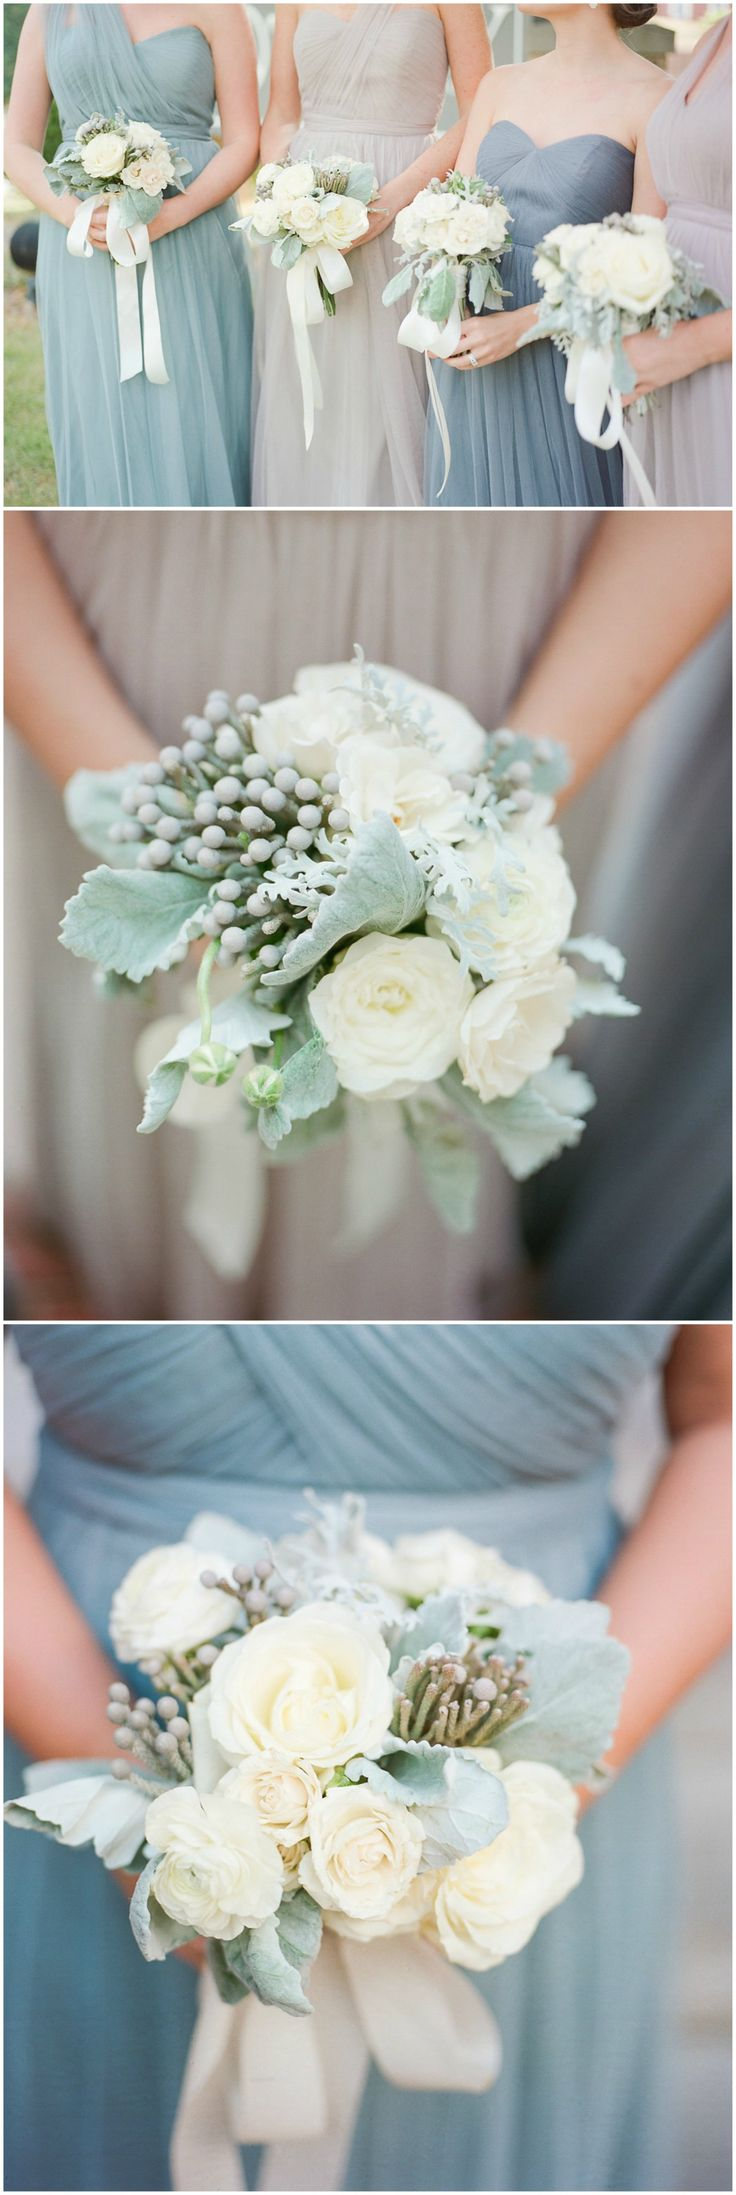 Pastel bridal party, mismatched chiffon bridesmaid dresses, blue and blush colored gowns, cream roses, white wedding bouquets, silk ribbons // Rachel & Noah Ray Photography